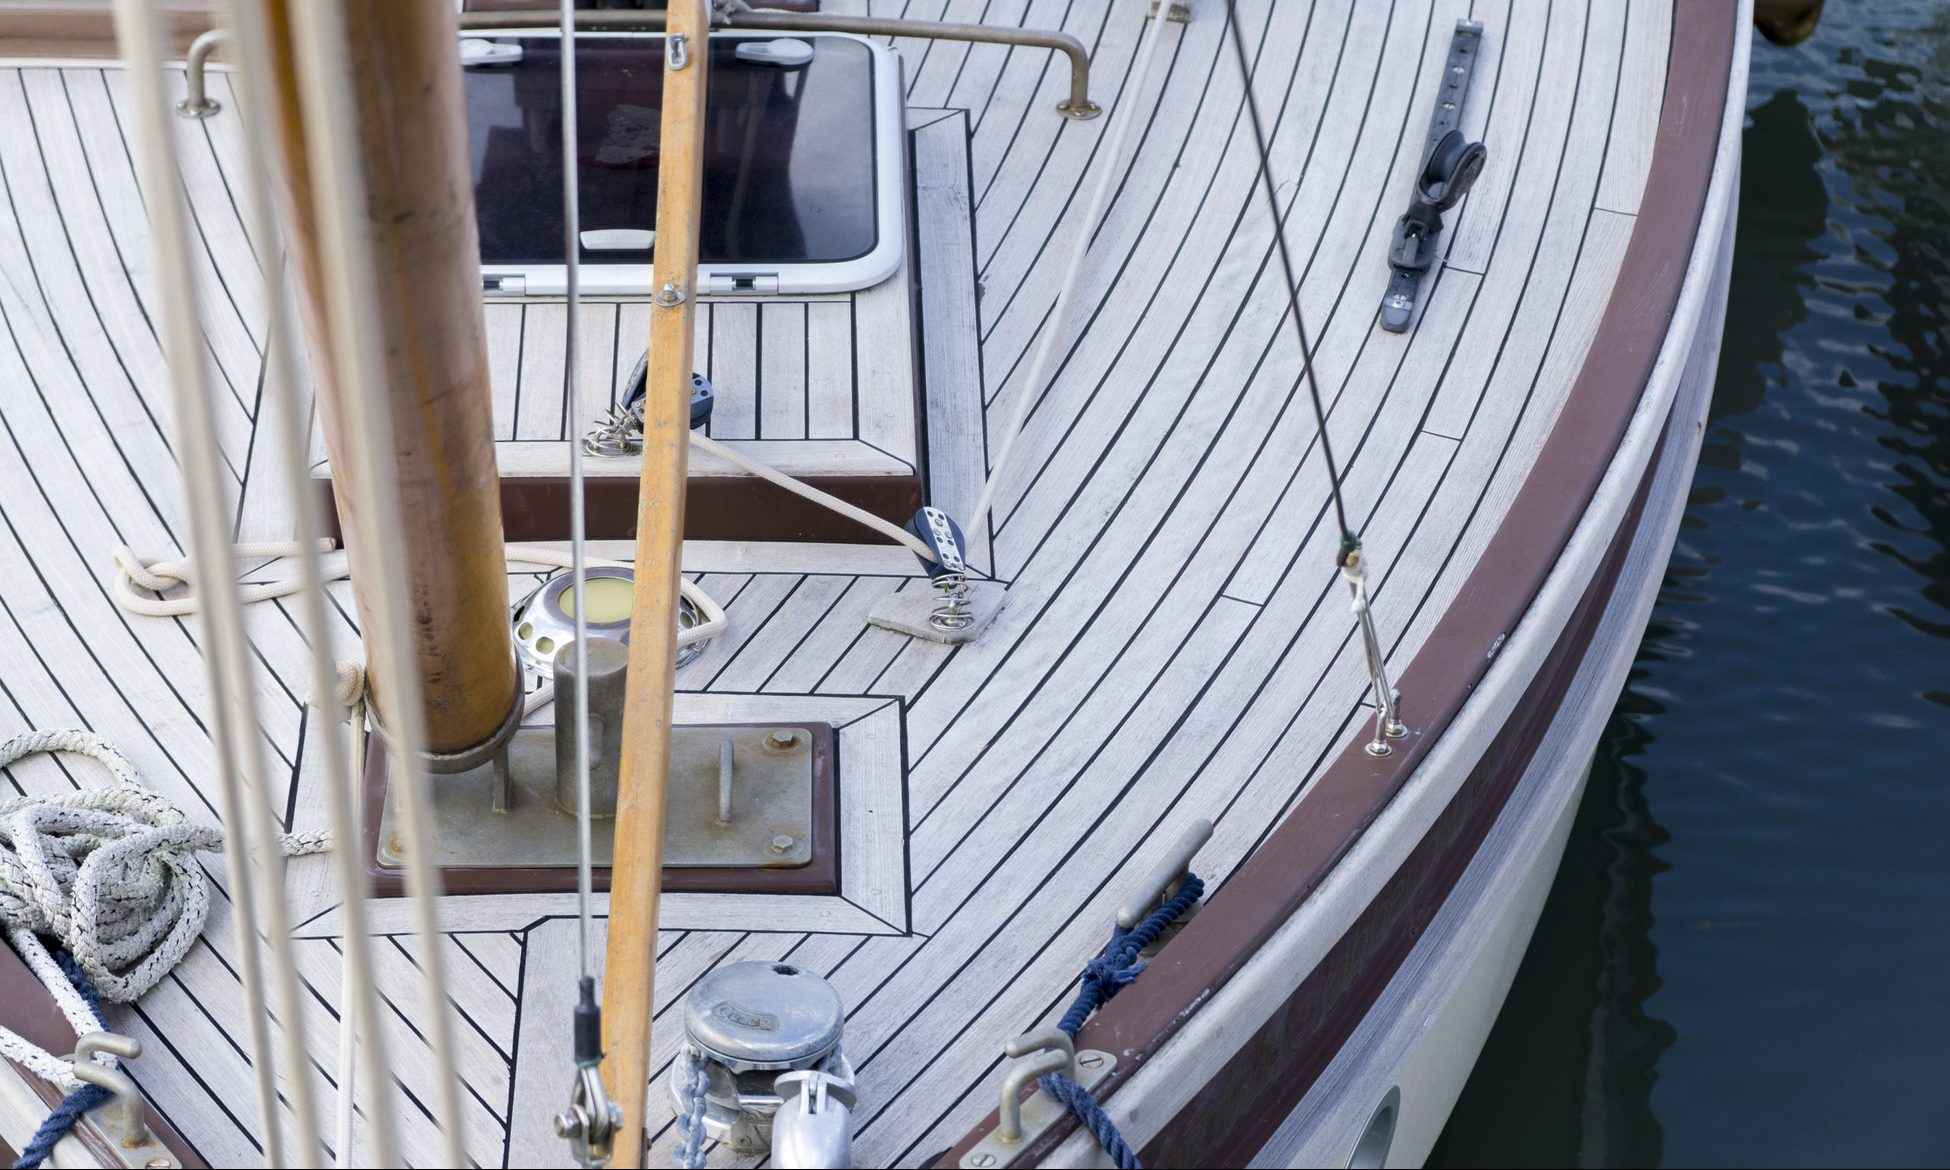 The Best Boat Deck Paint 2021 Non Skid Additive